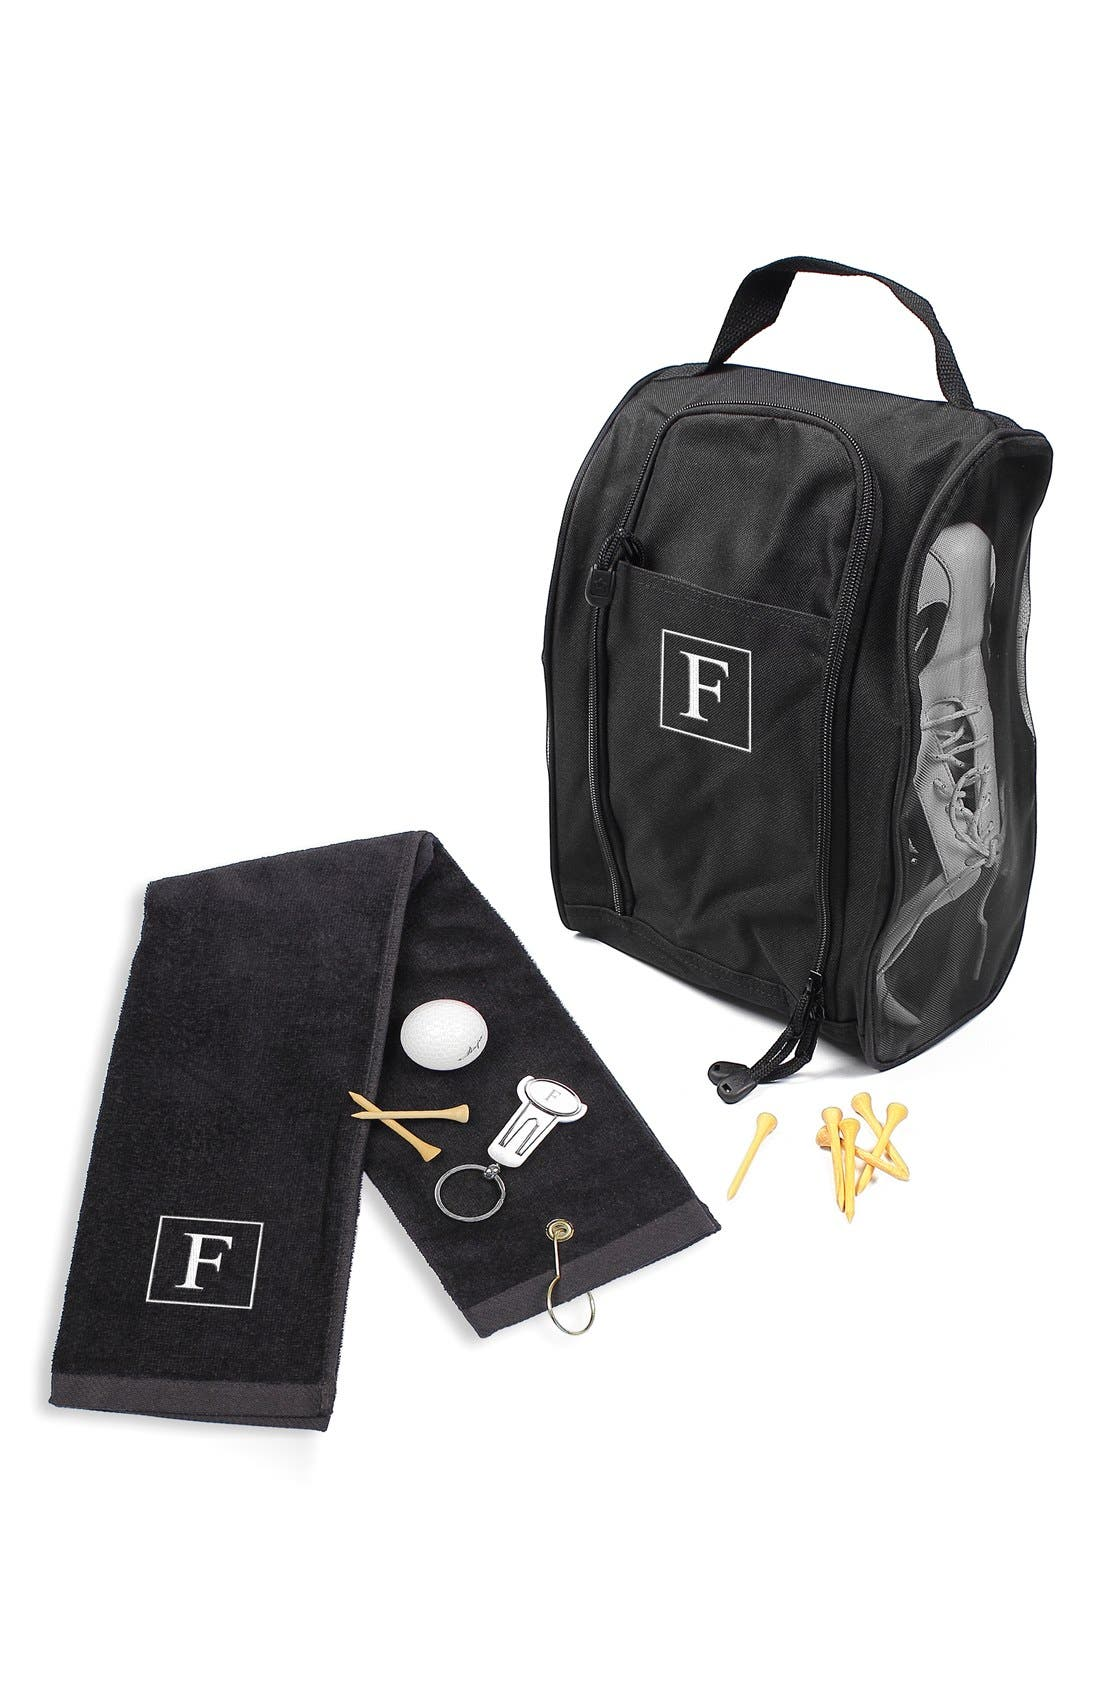 Monogram Golf Set,                             Main thumbnail 8, color,